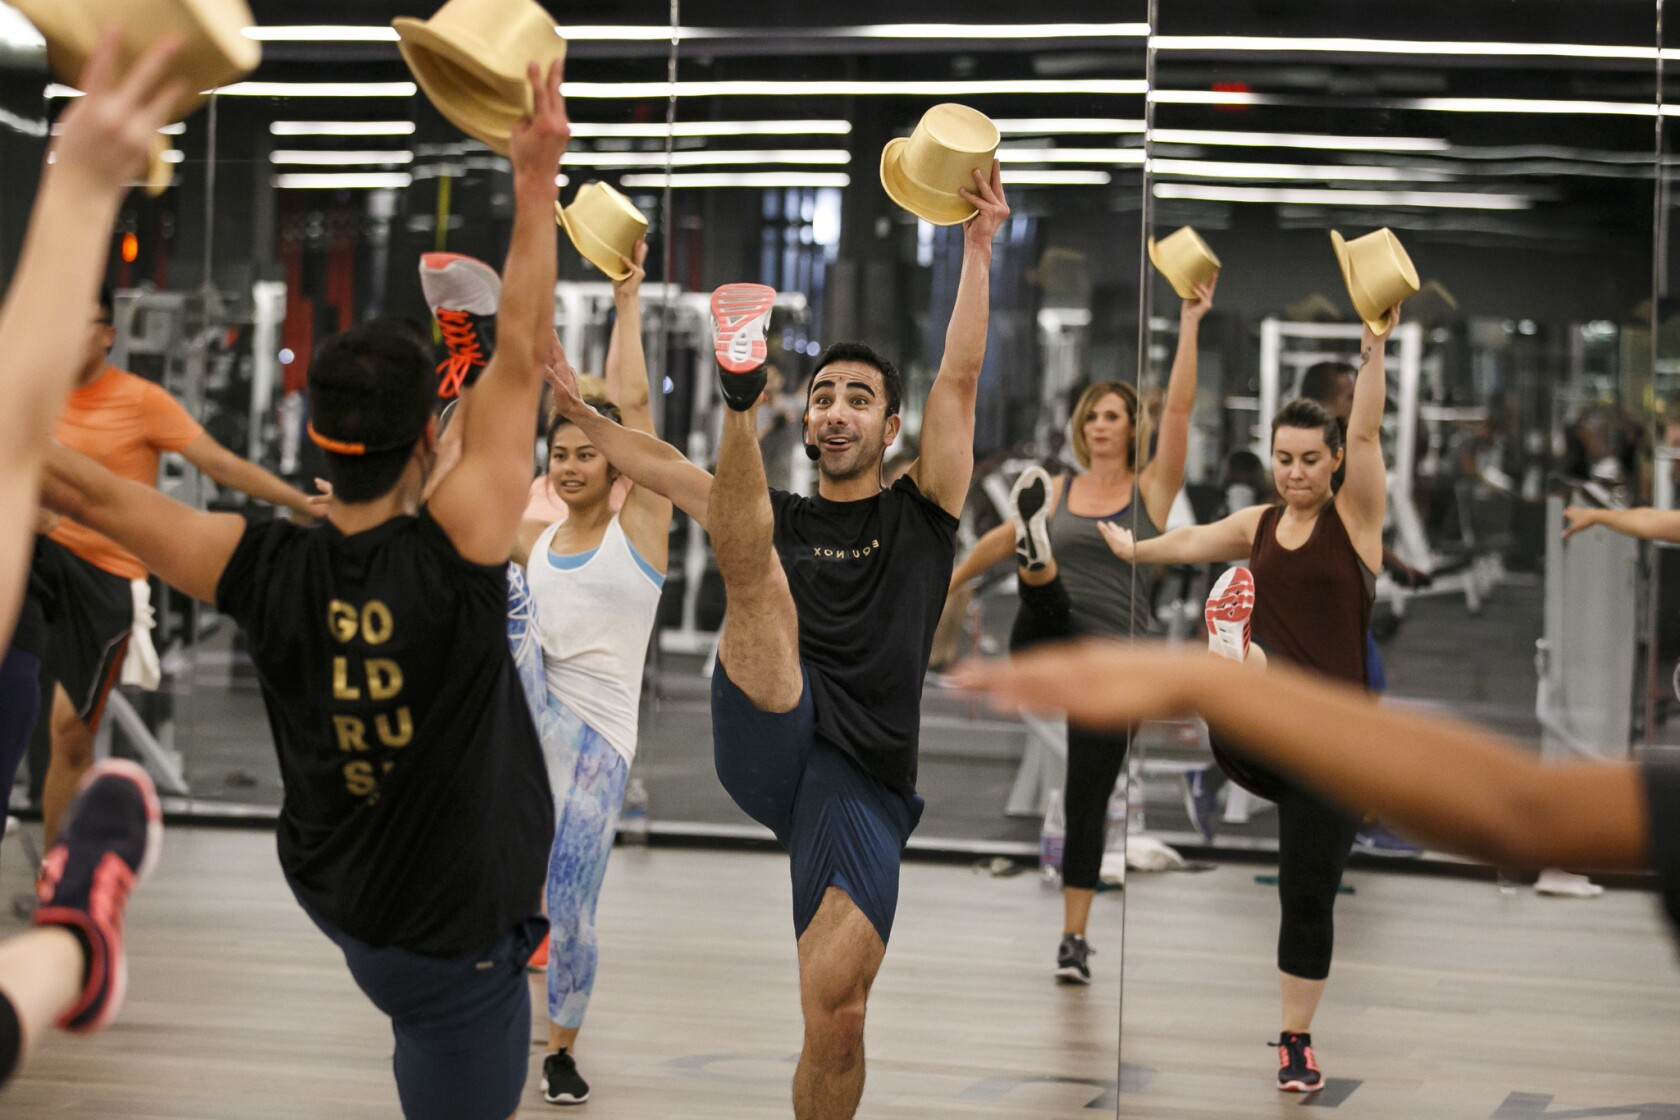 Photos: Looking in on Hollywood's hot new gym - Los Angeles